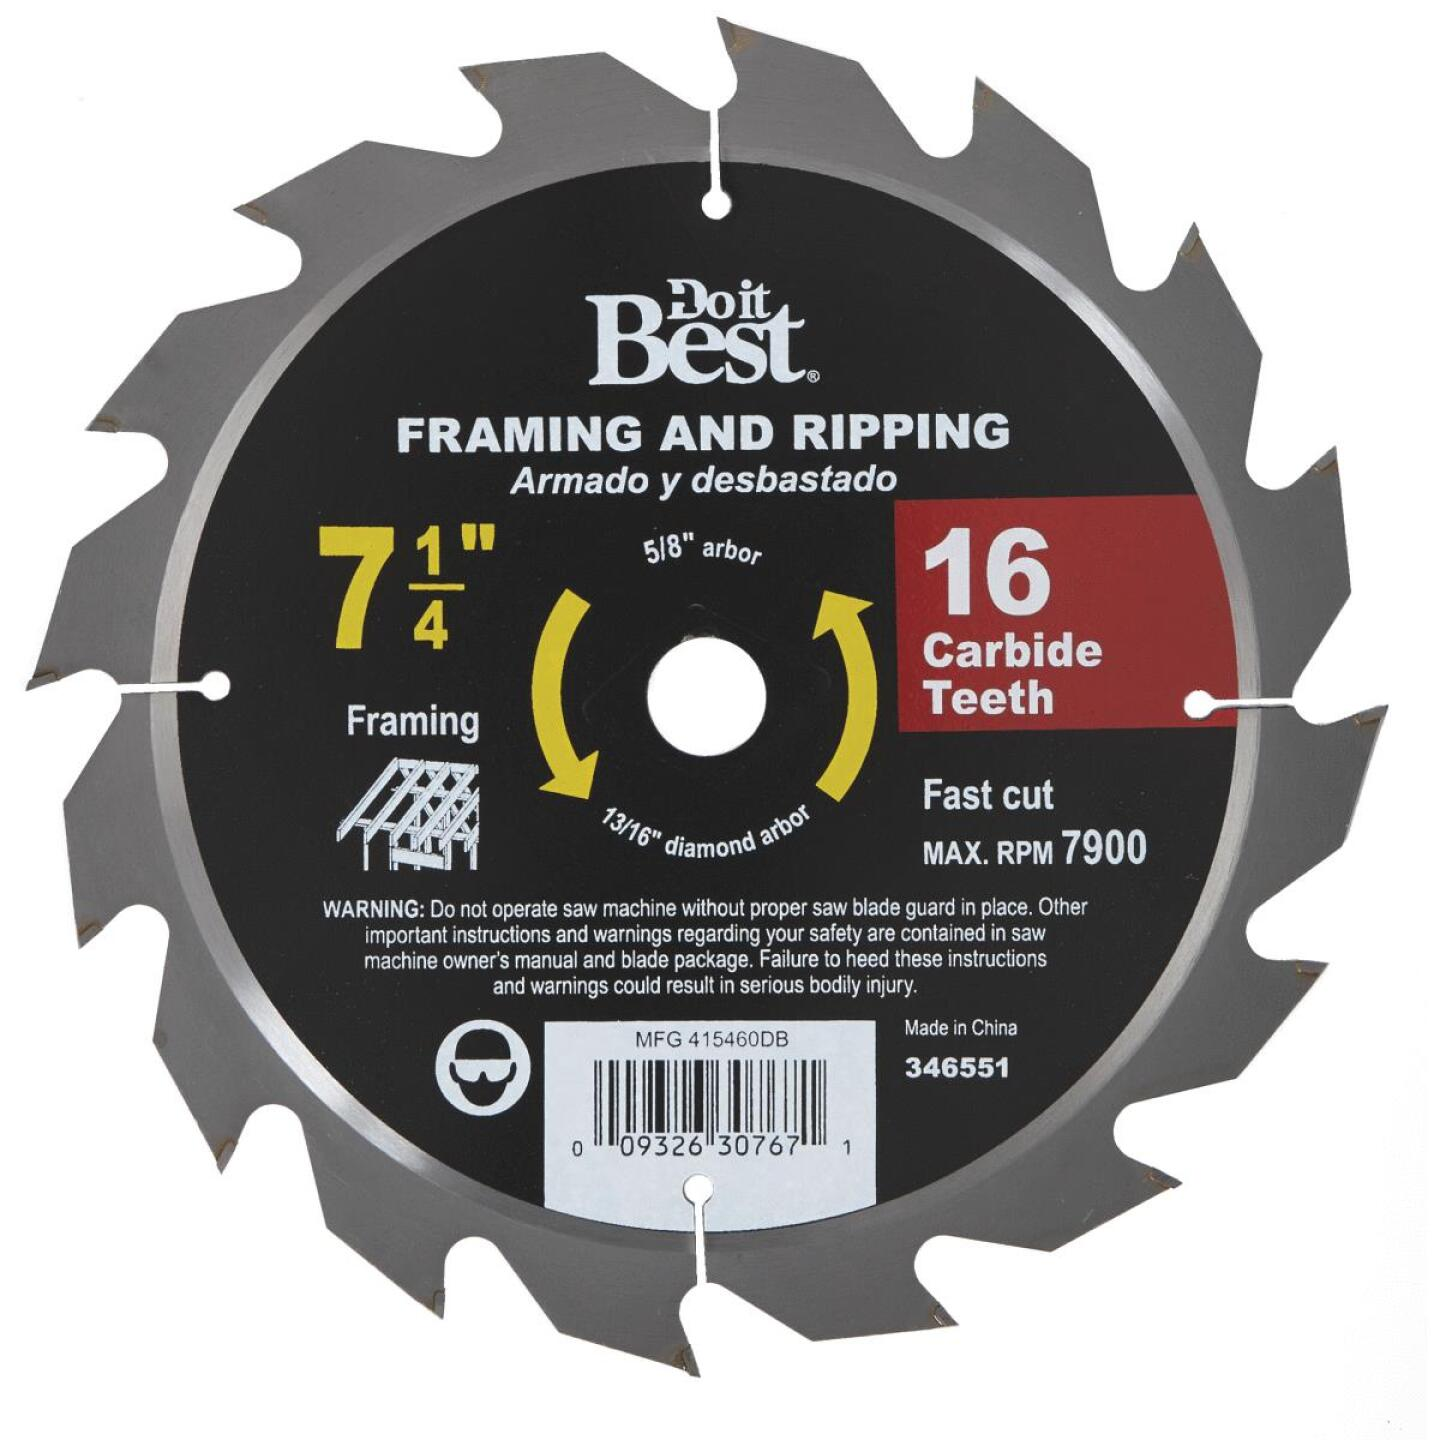 Do it Best 7-1/4 In. 16-Tooth Framing & Ripping Circular Saw Blade, Bulk Image 1